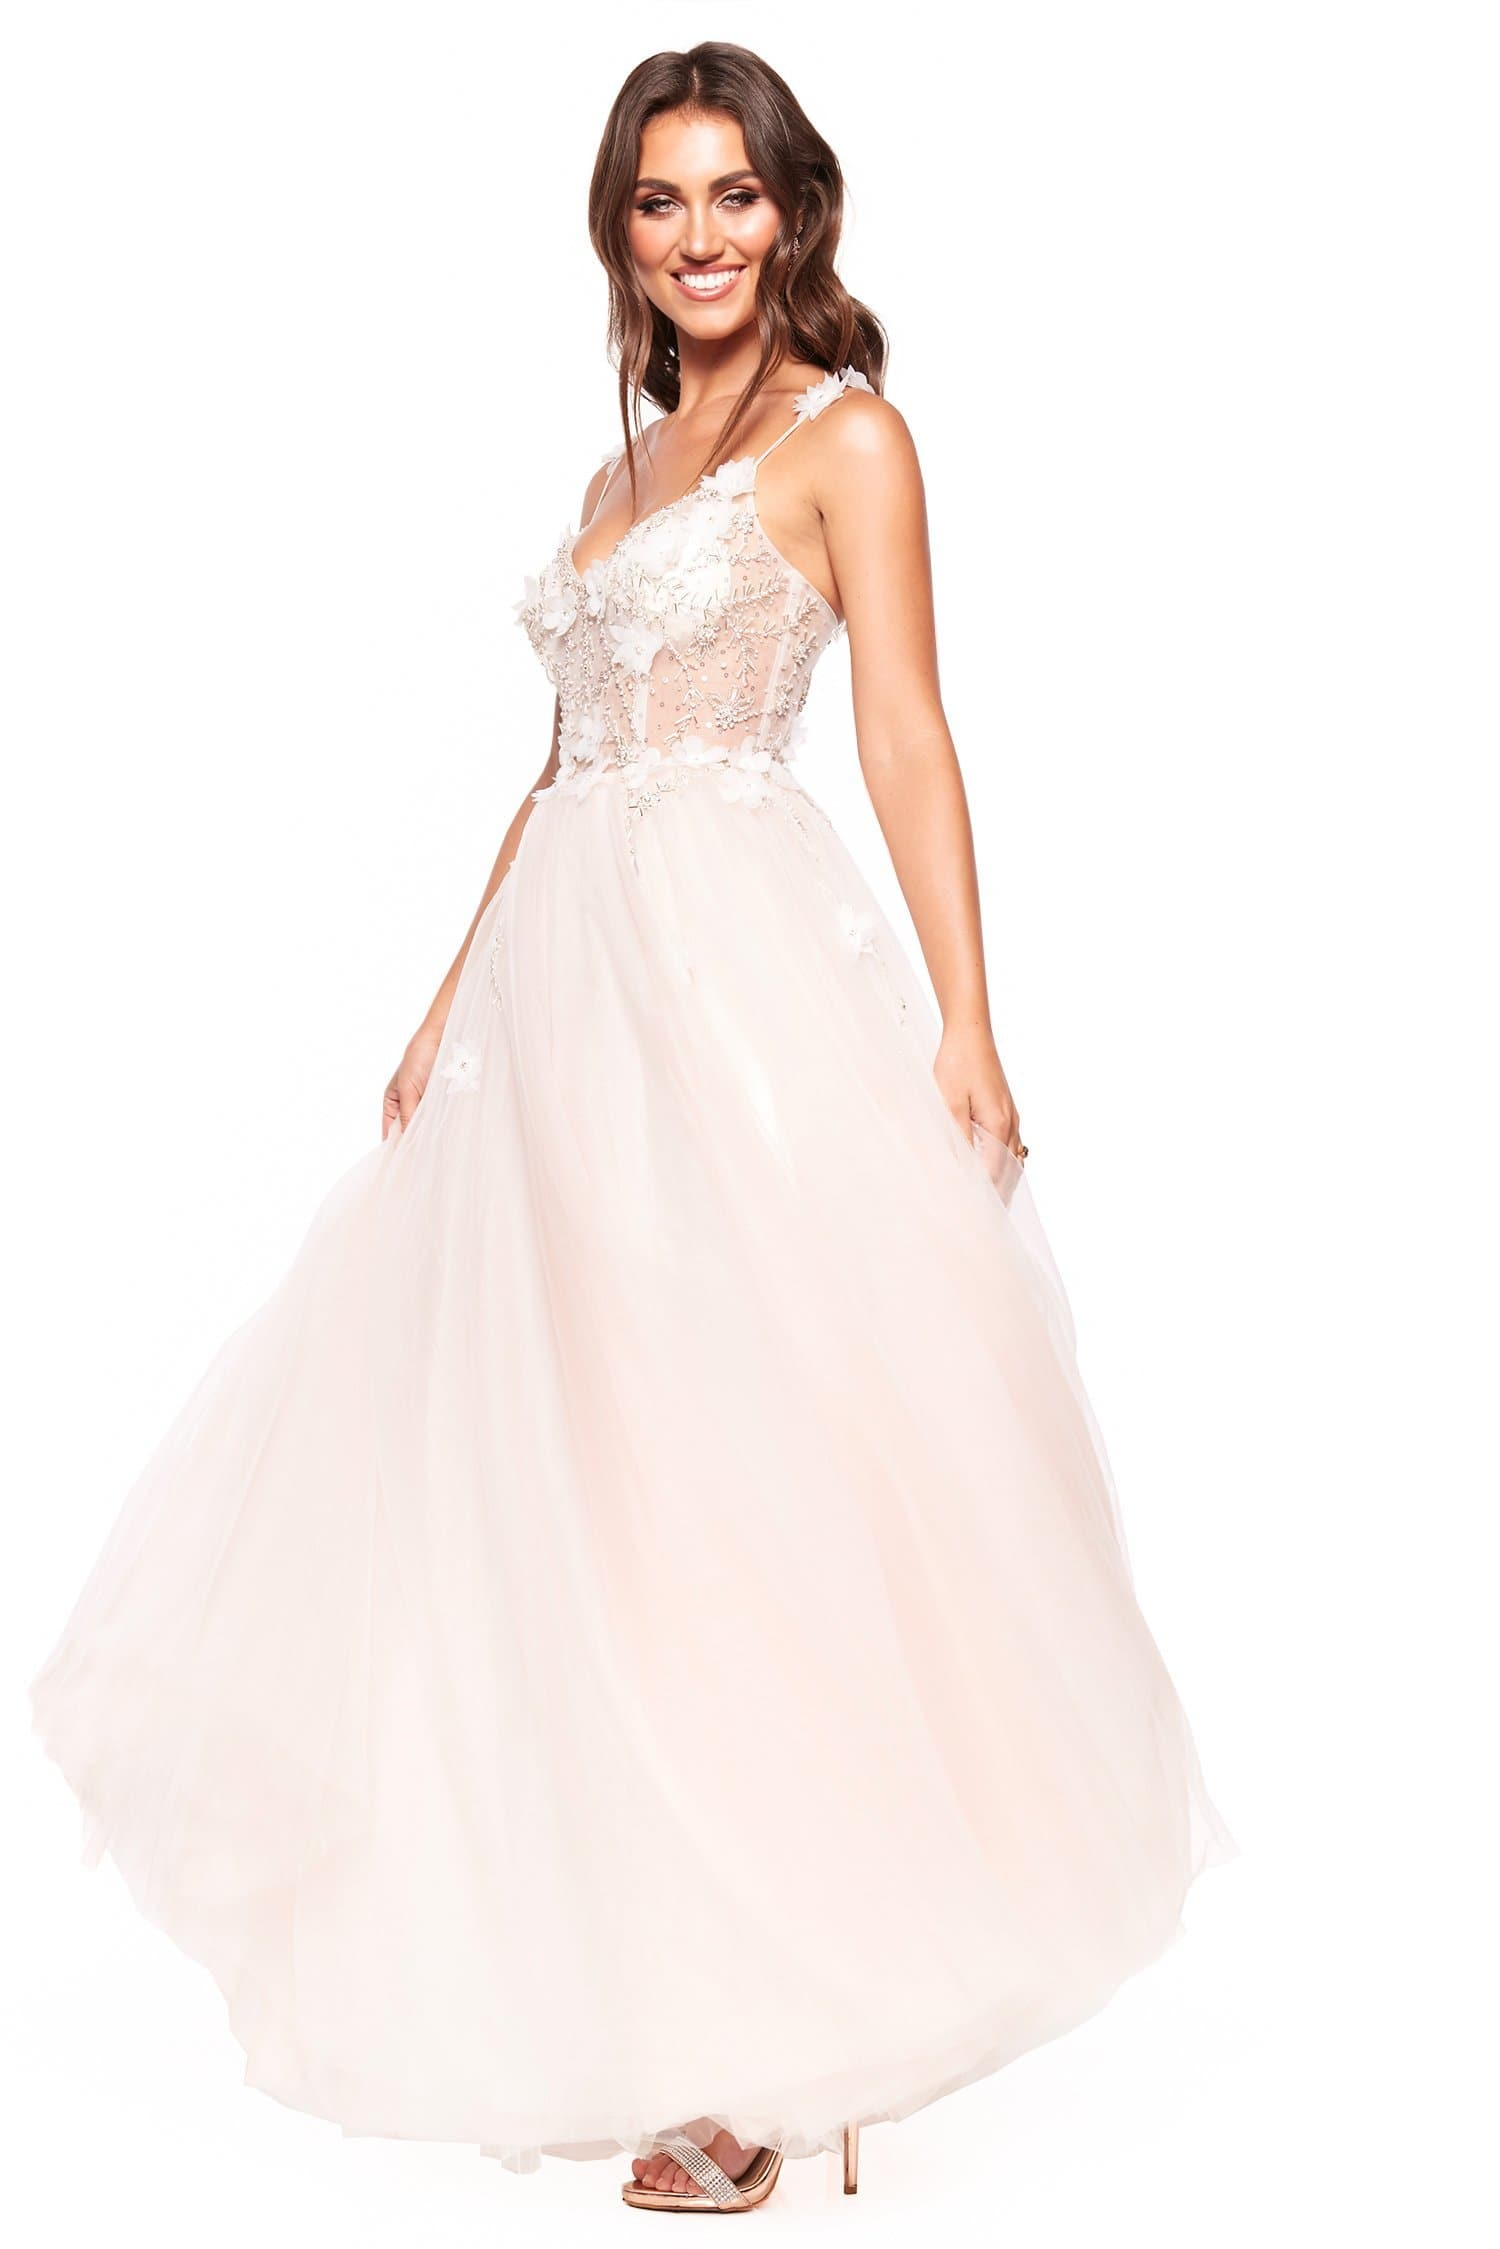 A&N Luxe Jasmine - Peachy White Beaded Tulle Gown with Detailed Bodice